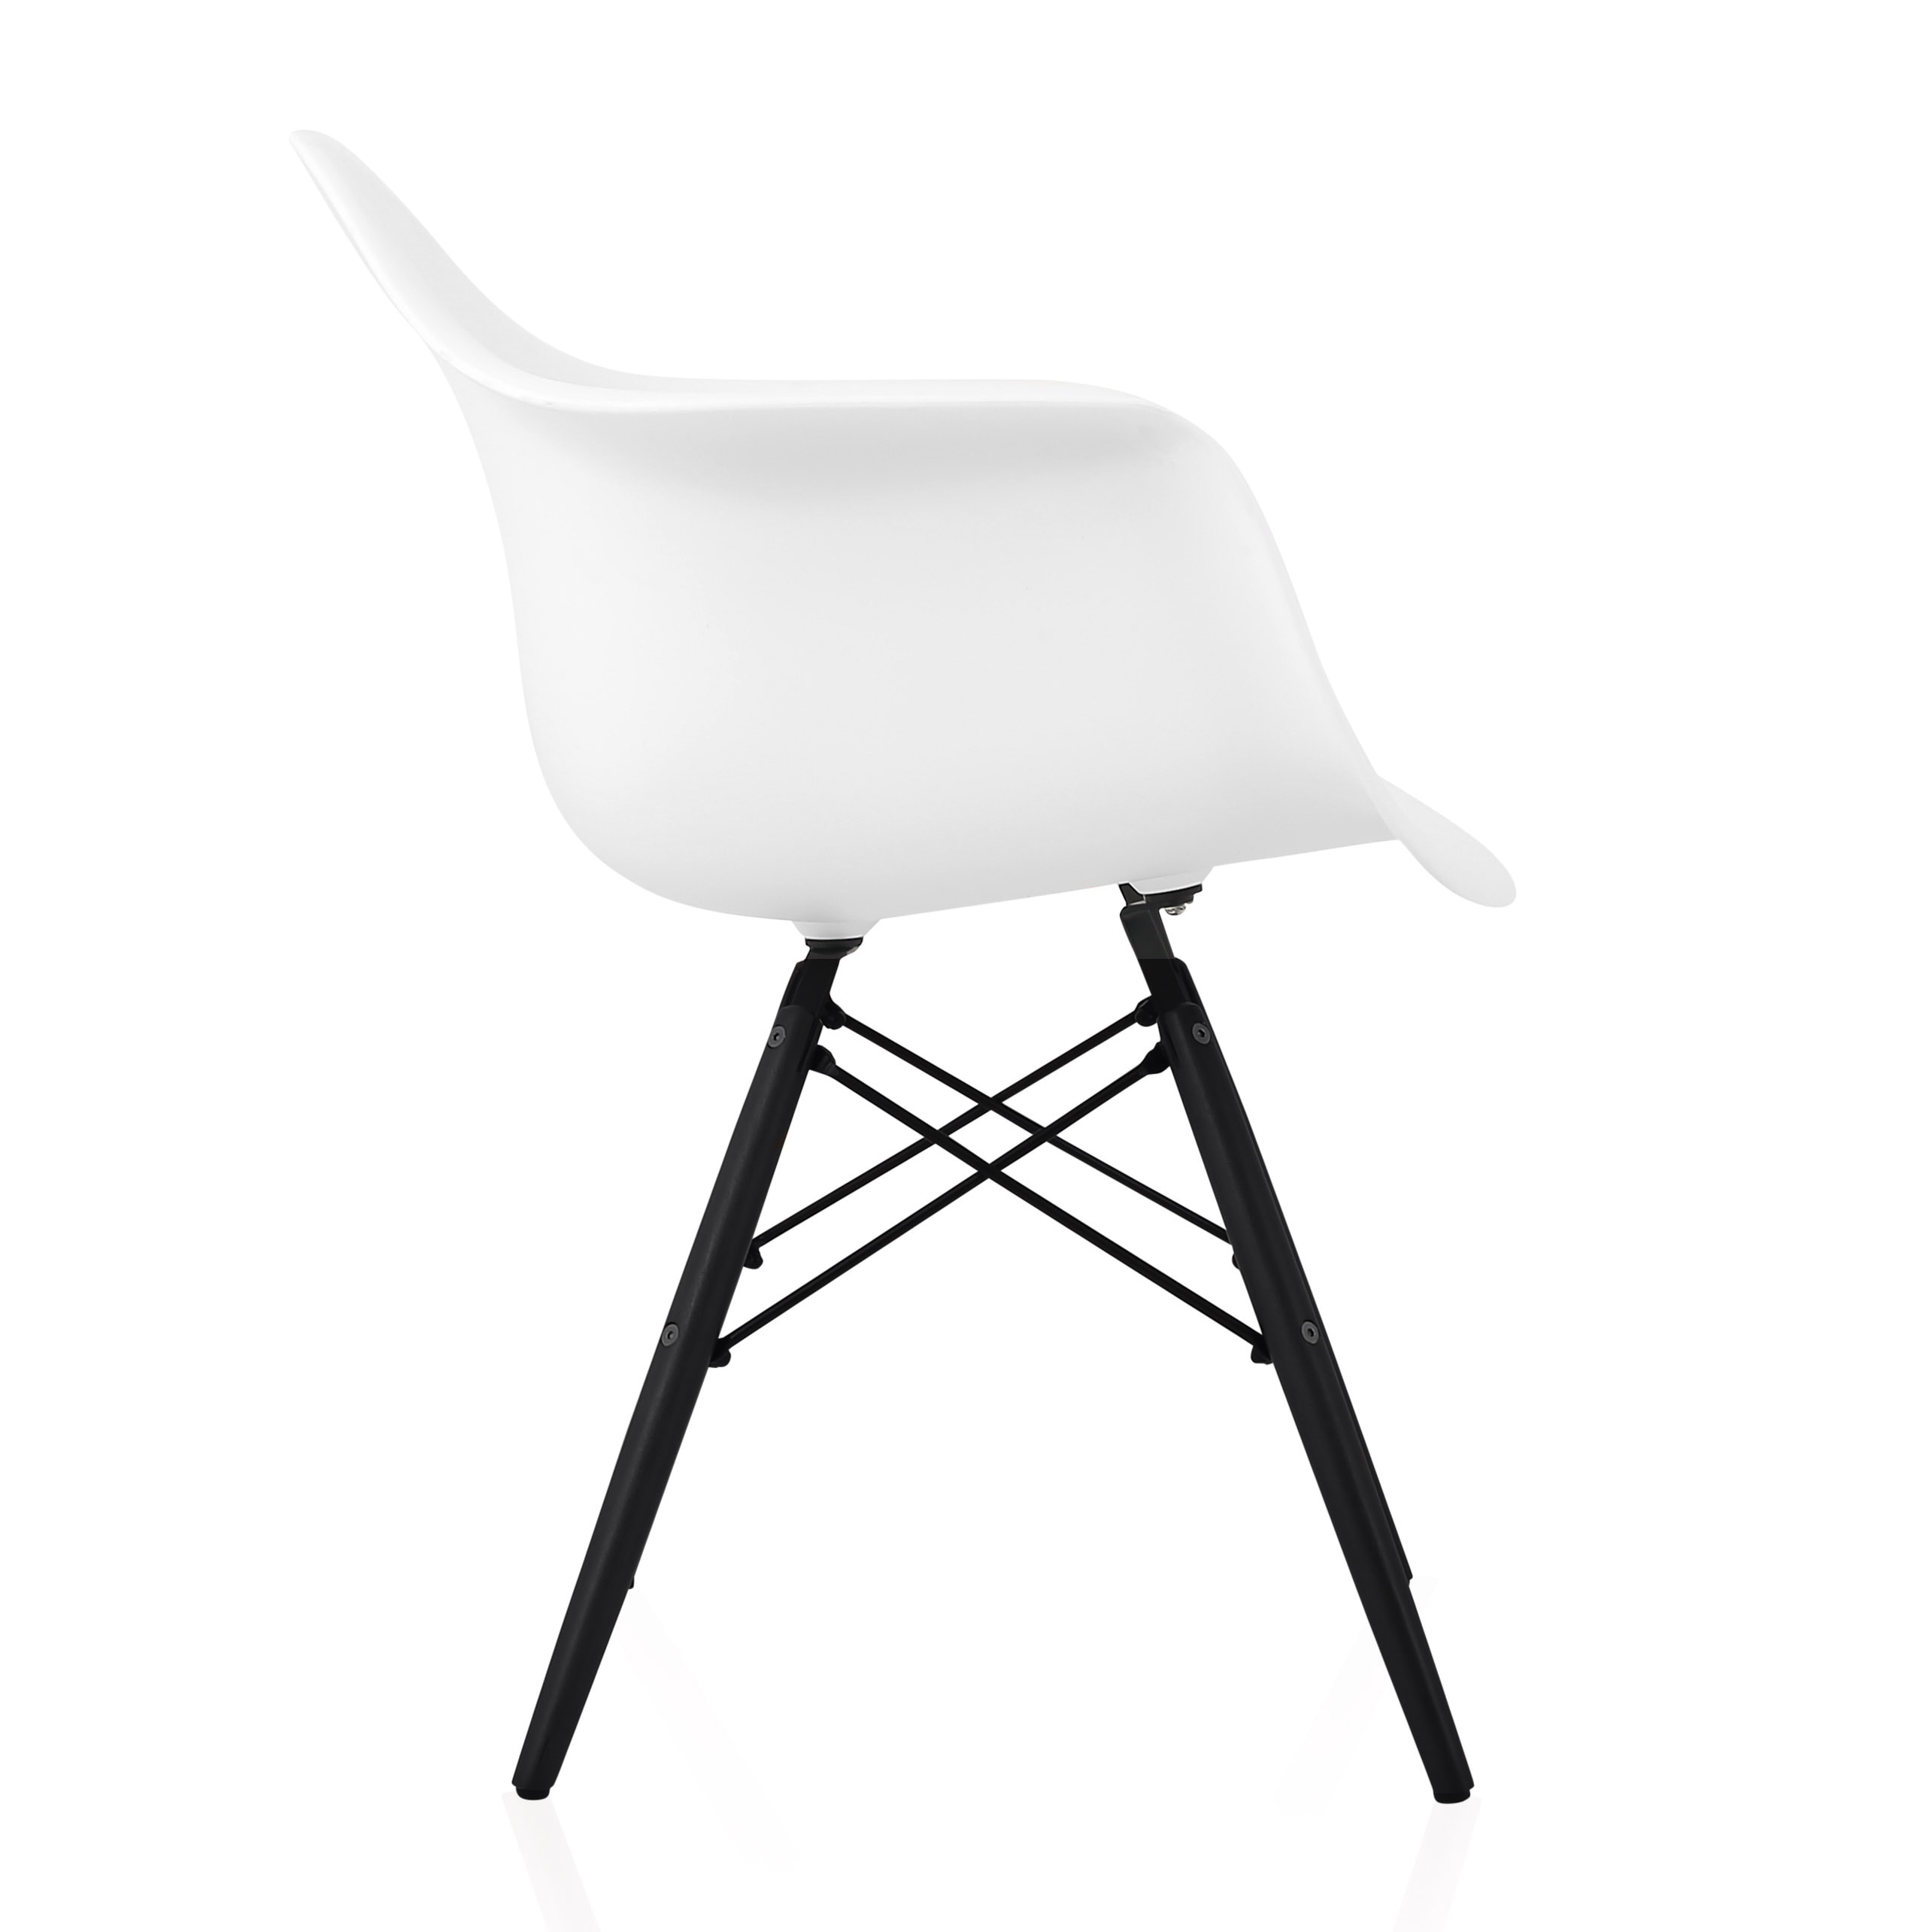 Surprising Cozyblock Scandinavian White Molded Plastic Dining Arm Chair With Black Wood Eiffel Legs Theyellowbook Wood Chair Design Ideas Theyellowbookinfo